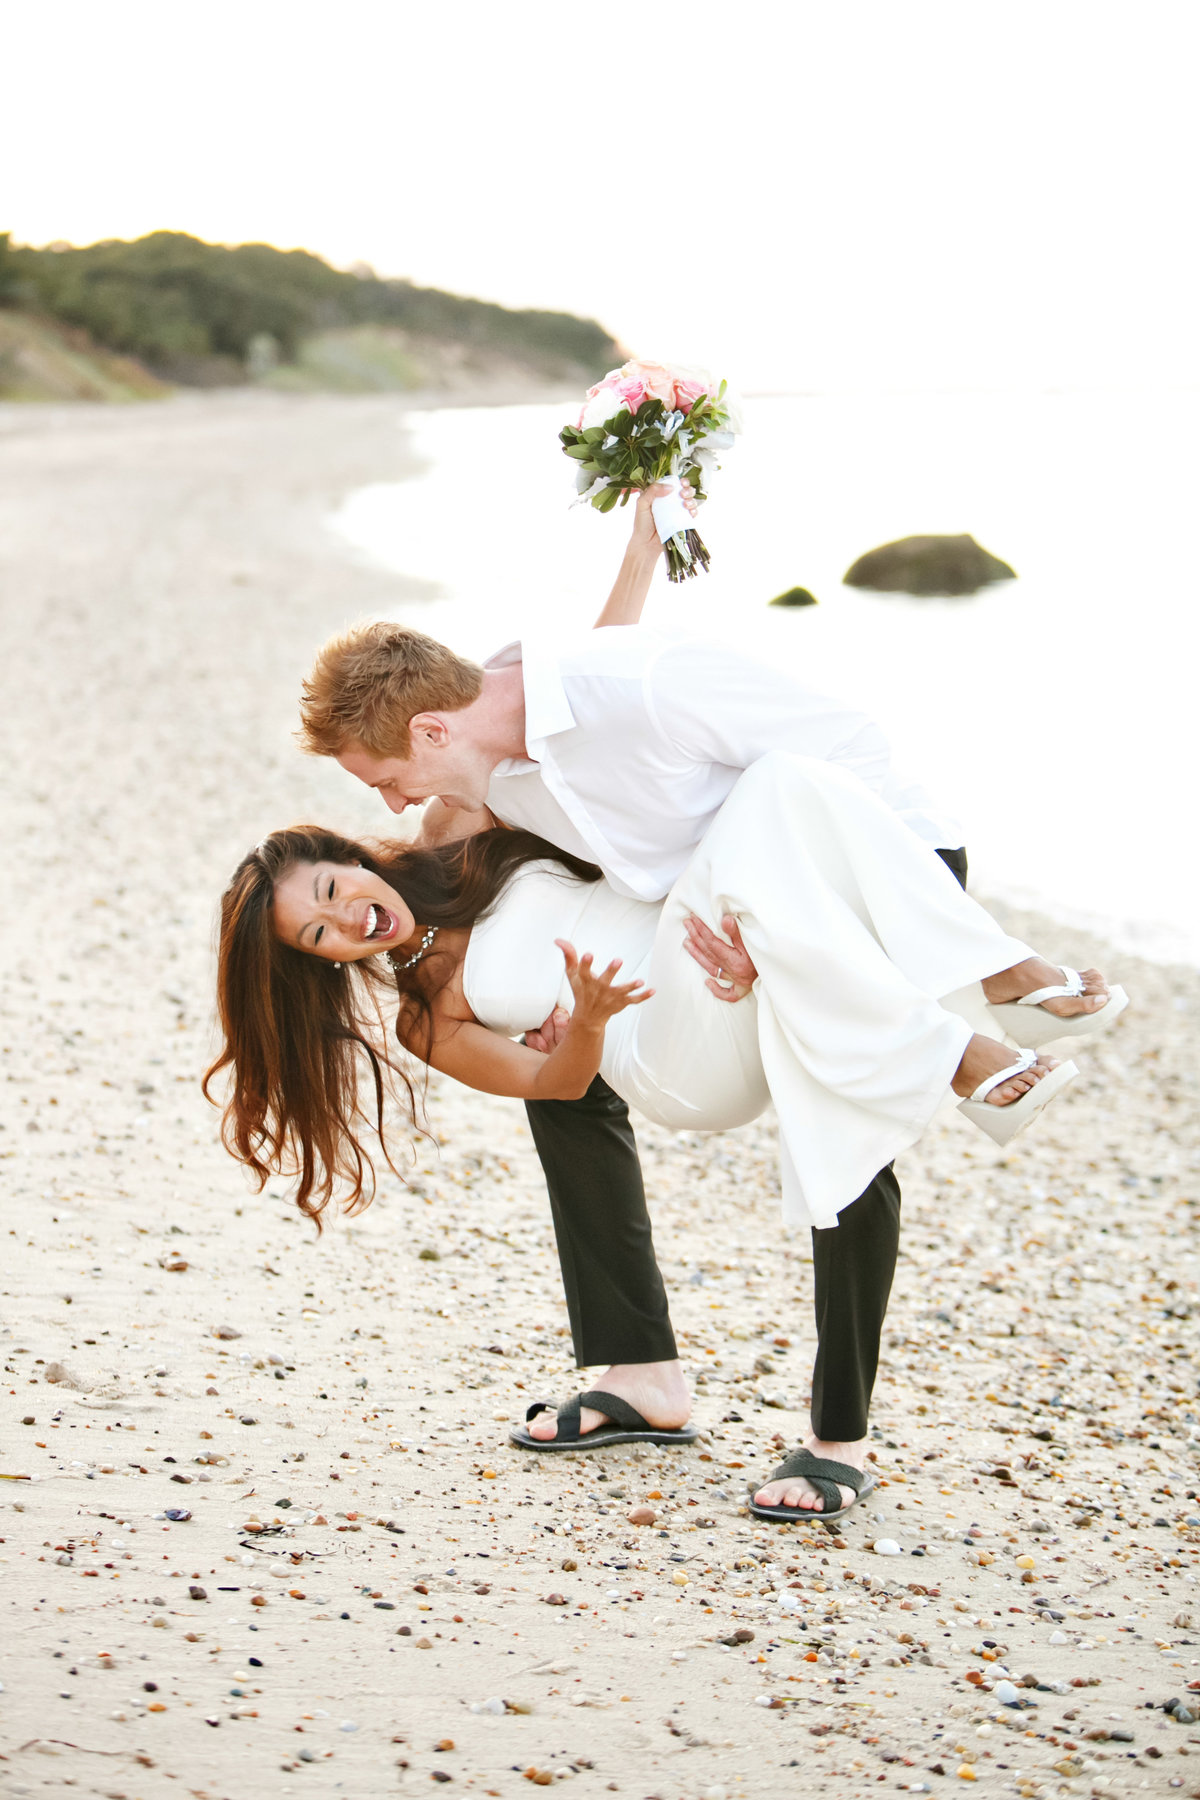 AmyAnaiz__Intimate_Elopement_Wedding_East_Hampton_New_York028